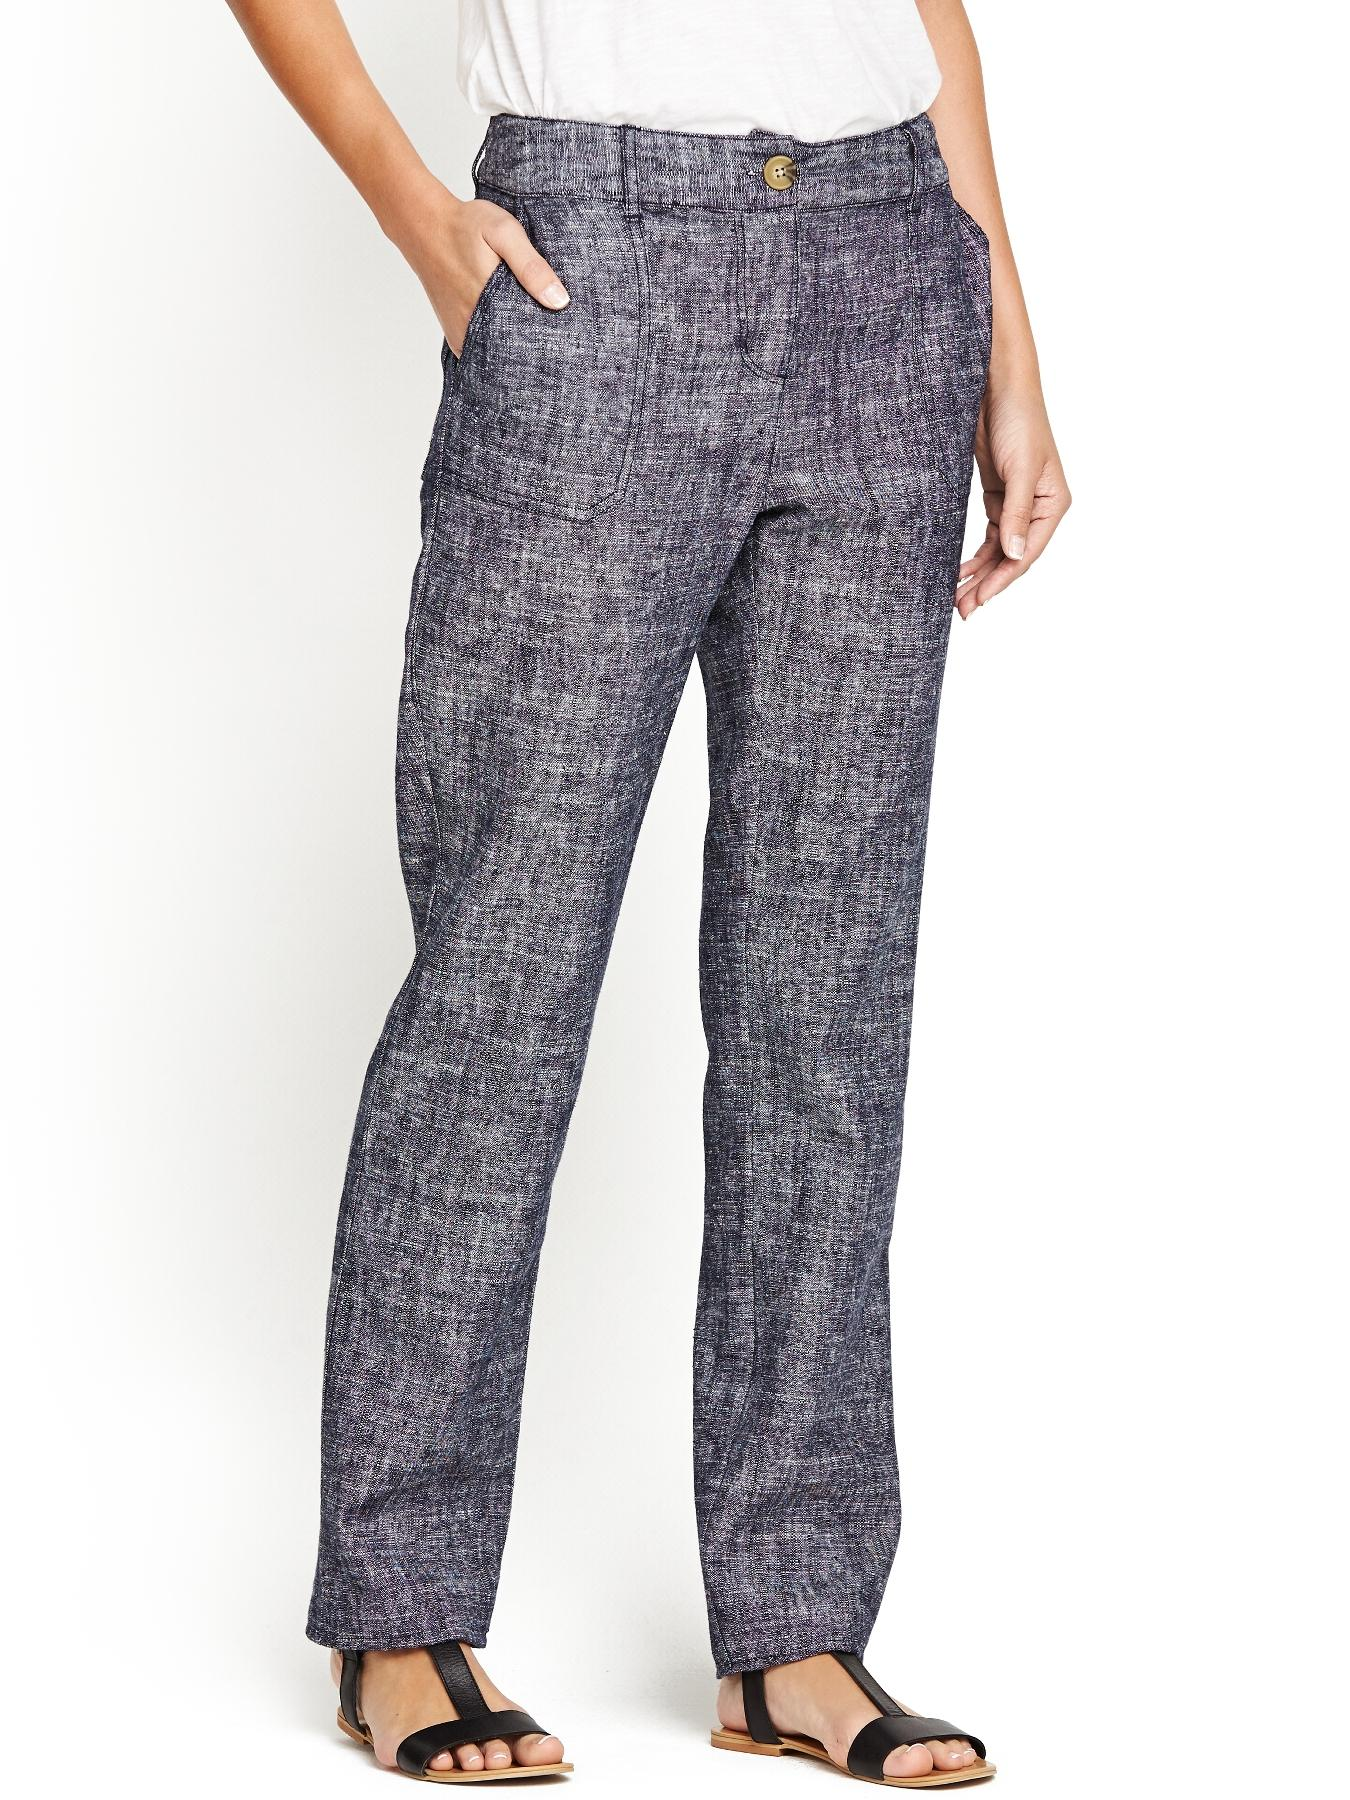 Textured Linen Trousers, Grey,Navy